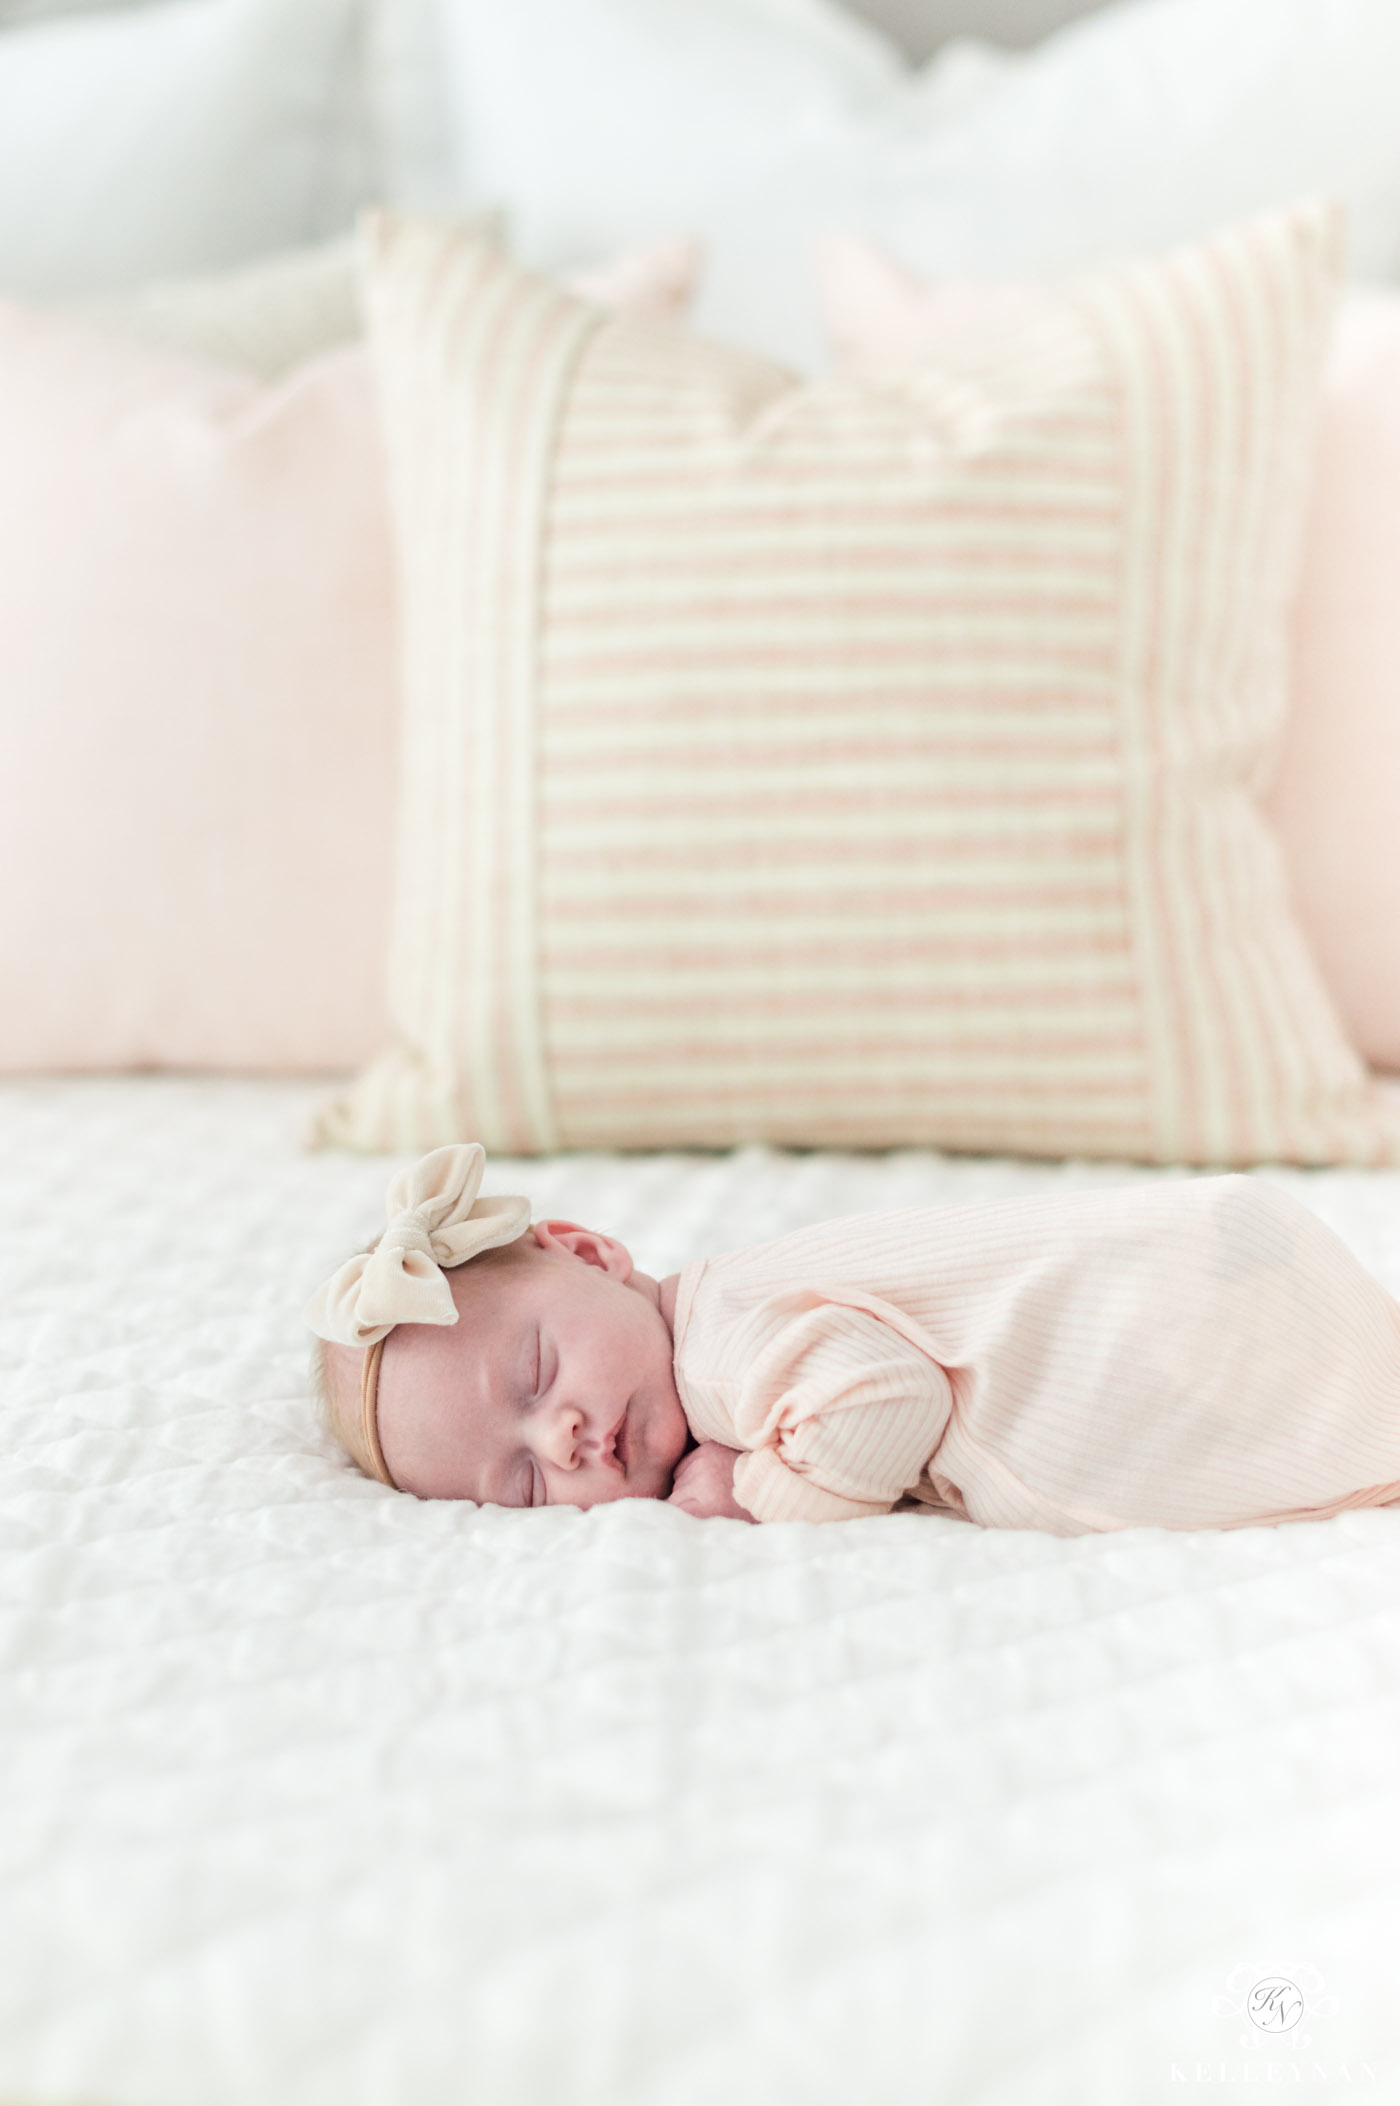 Little girl newborn photo with white and pink bedding